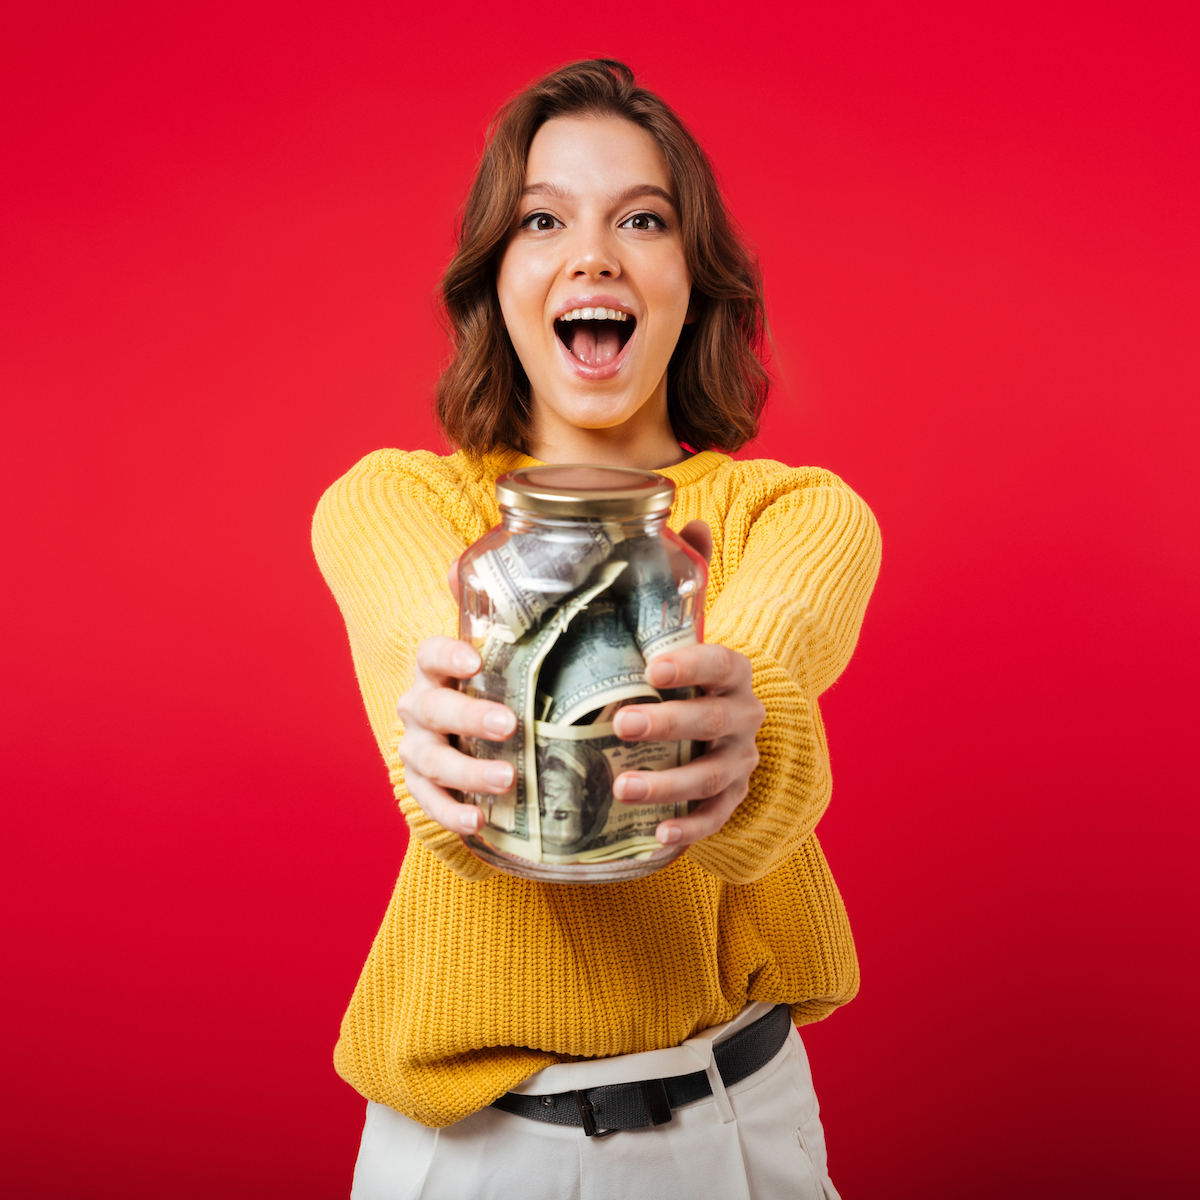 Portrait of an excited woman showing jar full of money banknotes isolated over pink background